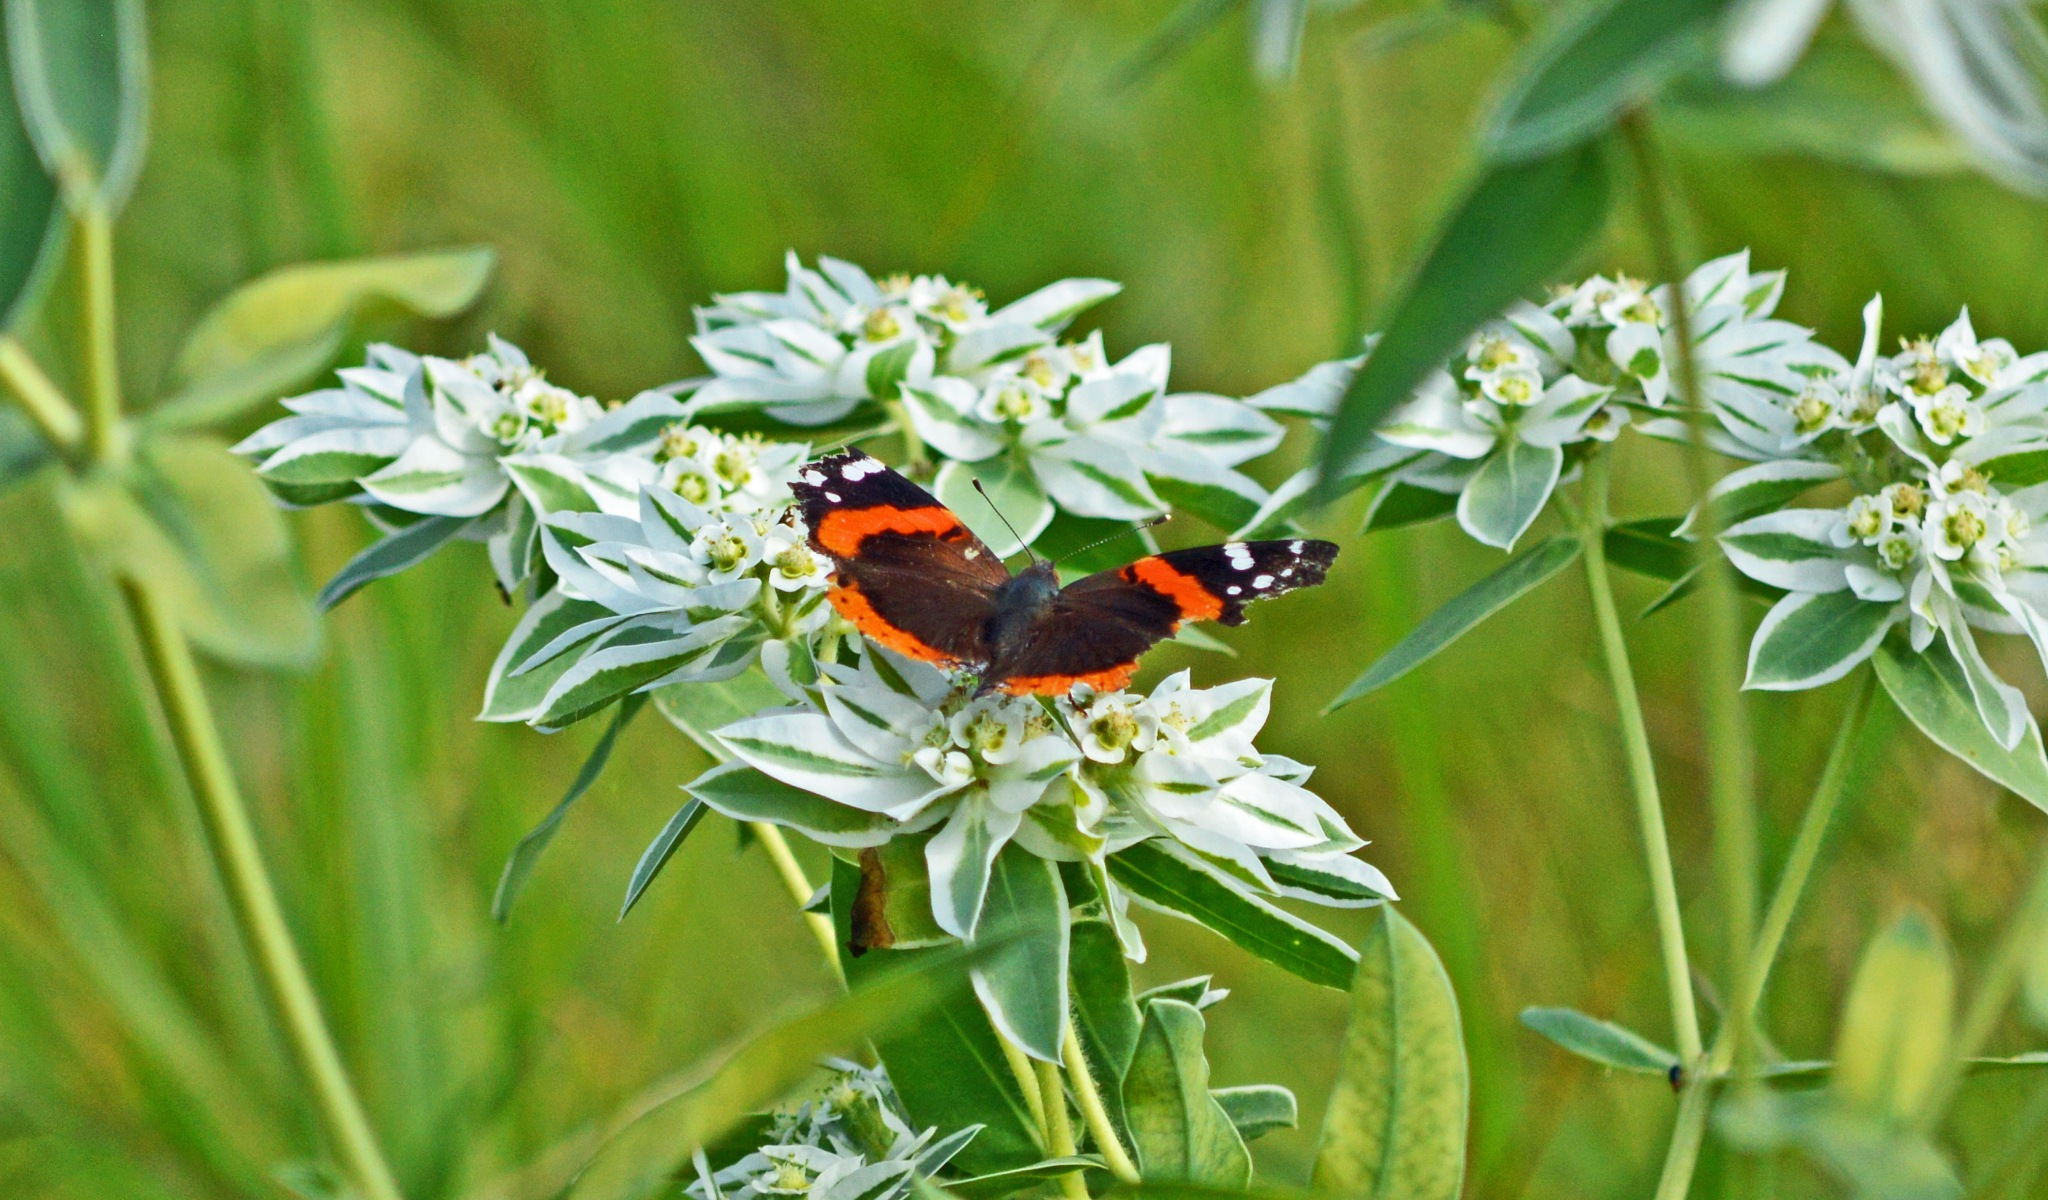 Wildflower Butterfly by James R McWilliams